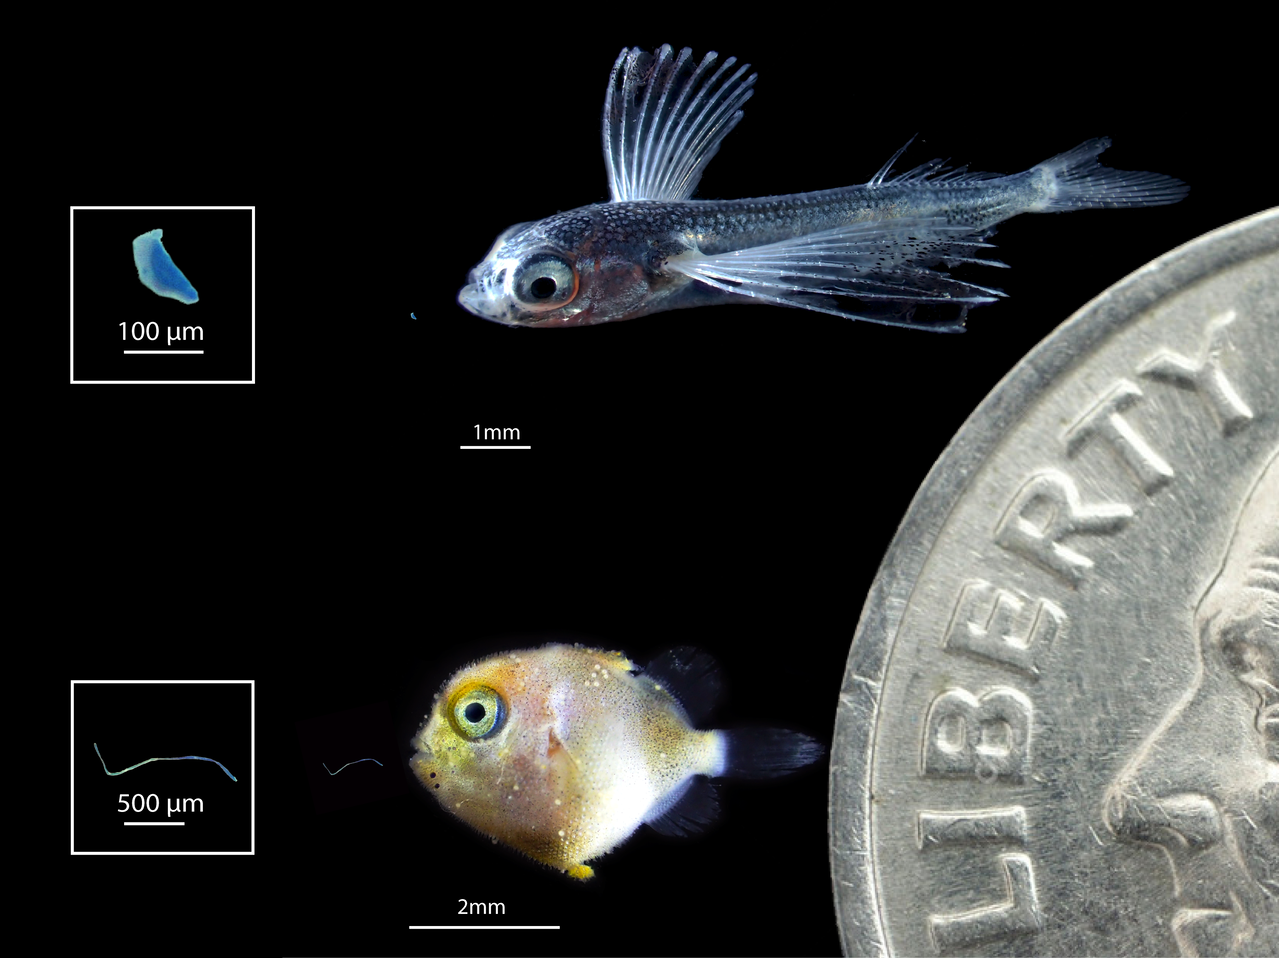 Larval flying fish (top) and triggerfish (bottom) with magnified plastics that fish ingested (left). Dime shown for scale. Photo: NOAA Fisheries/Jonathan Whitney.